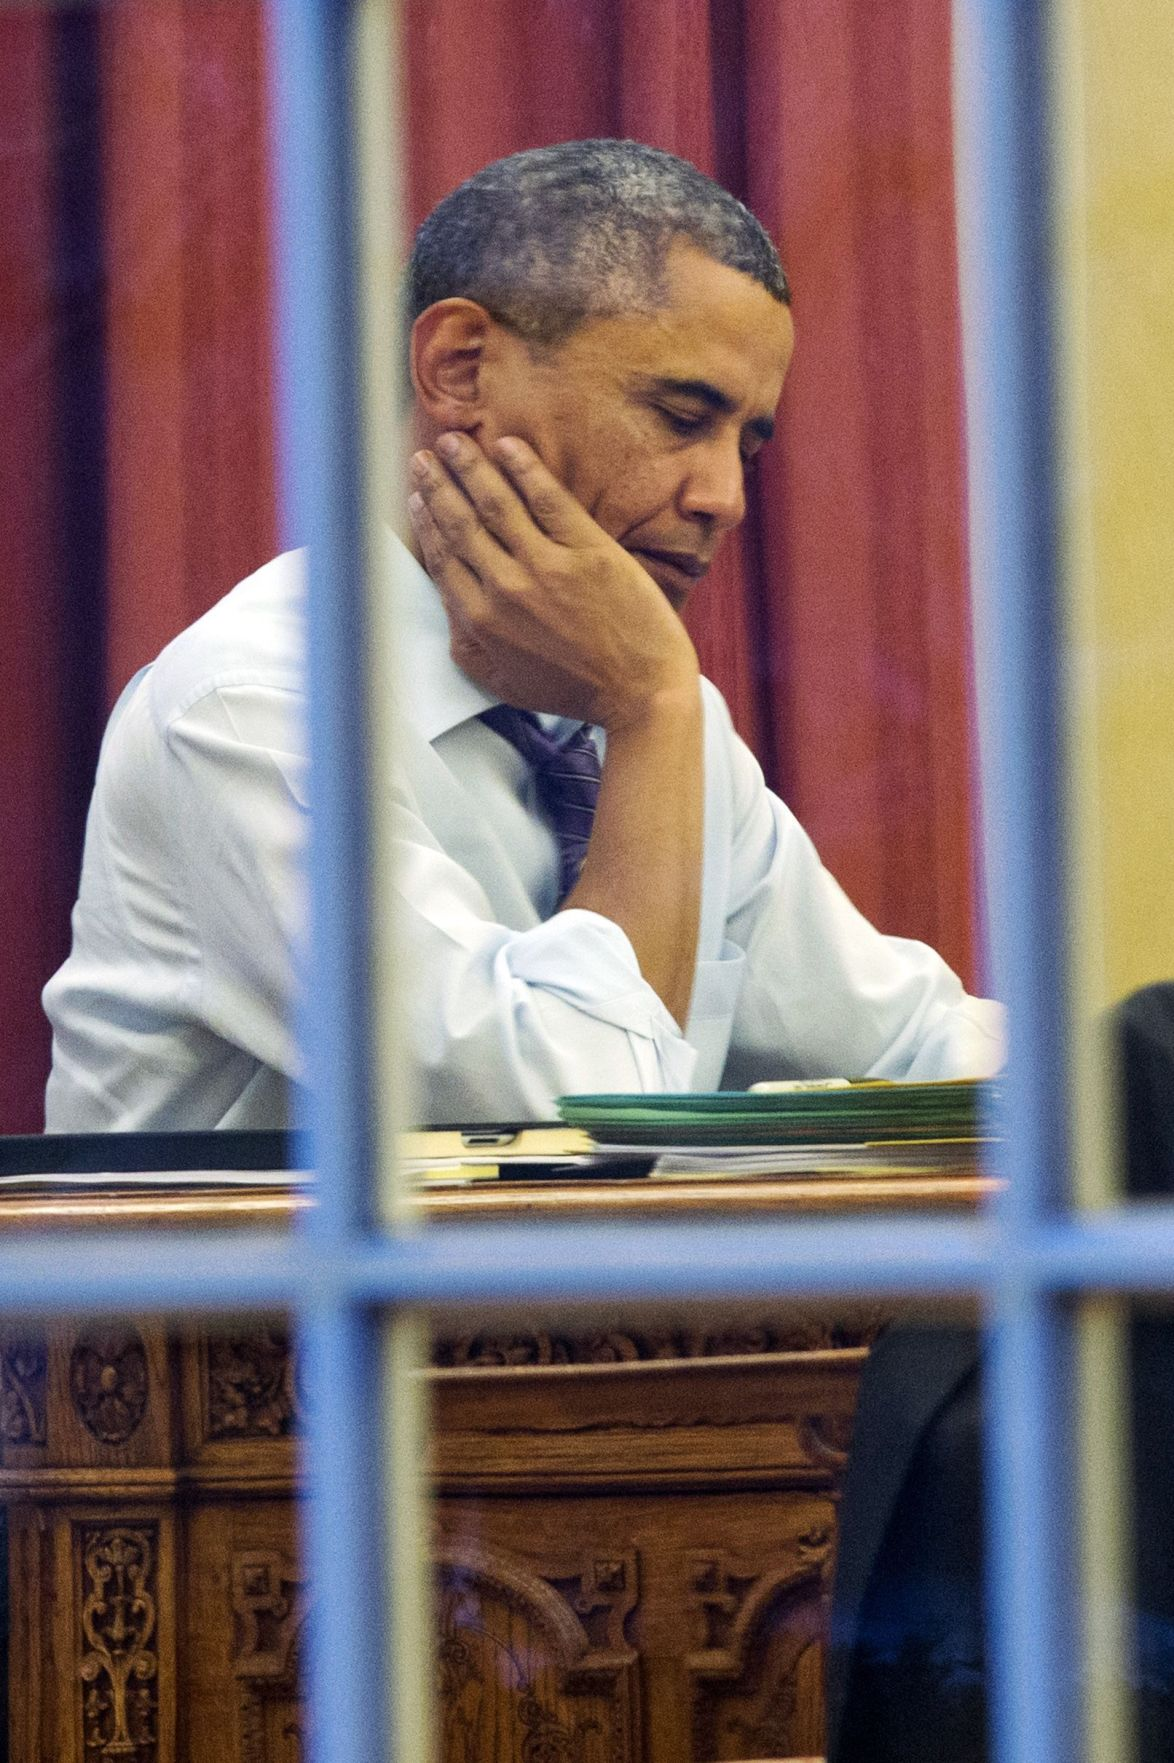 A dose of reality for Obama State of the Union to redefine goals